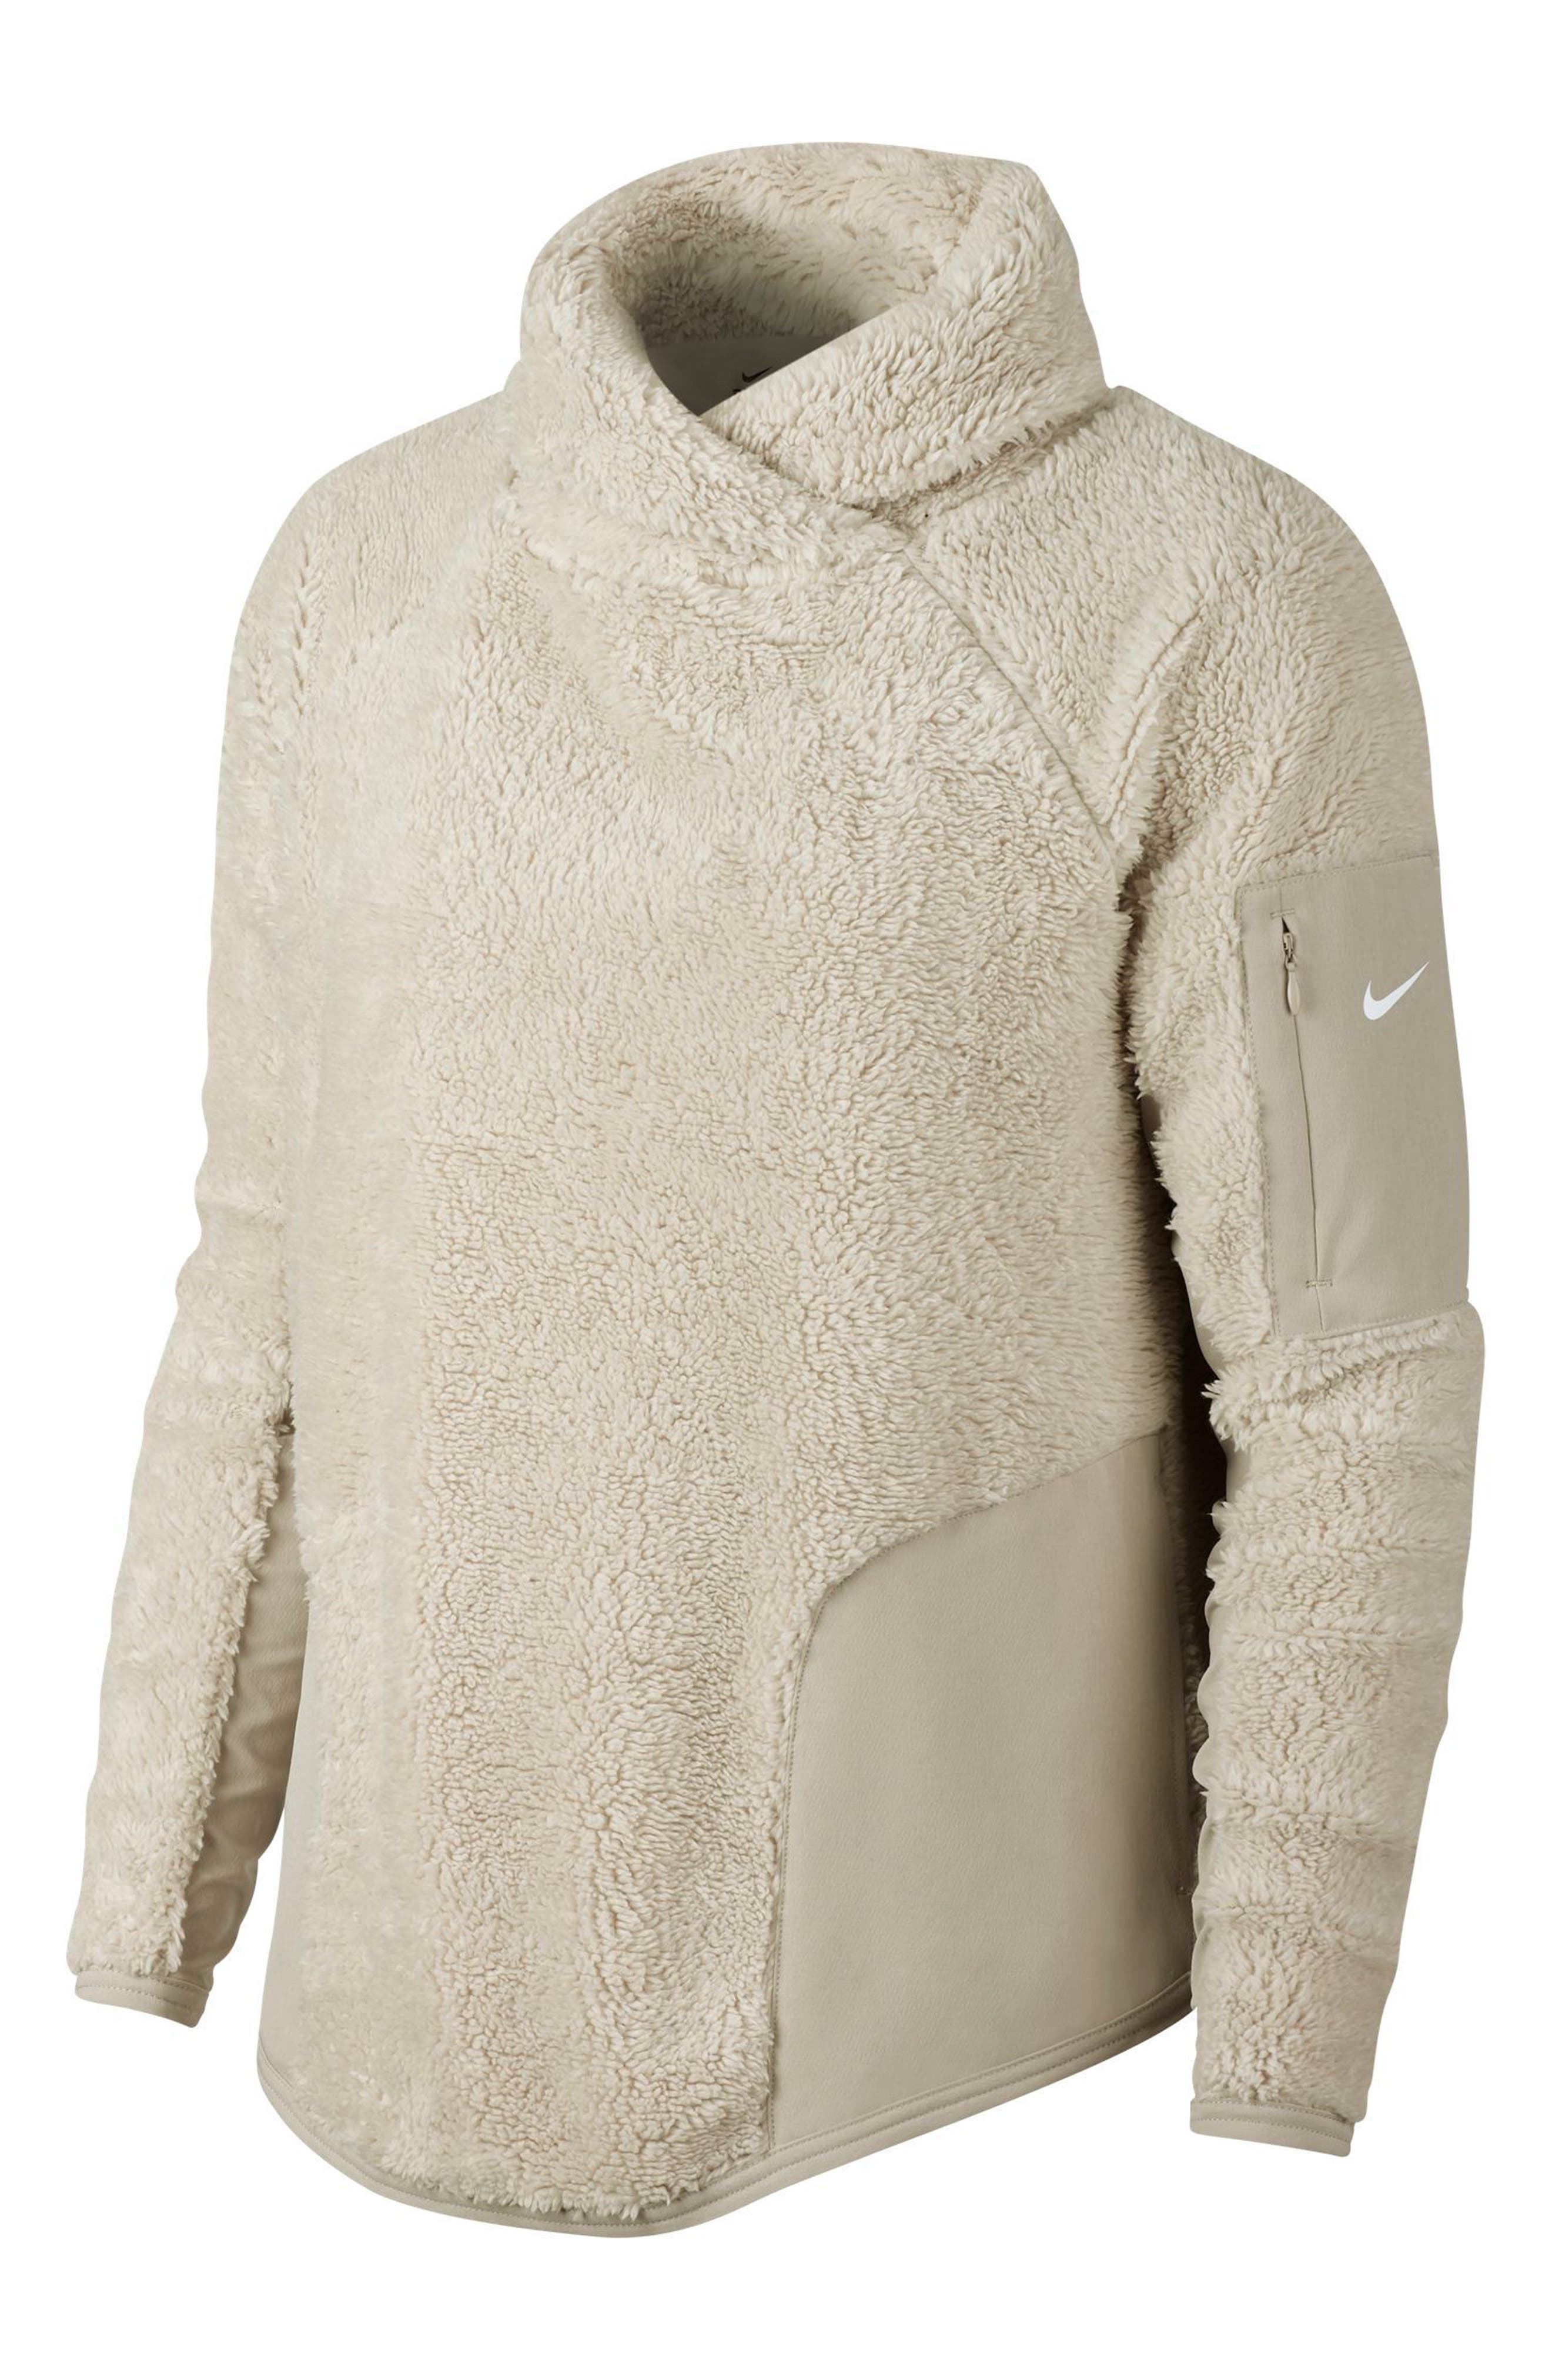 Stand-Collar Sherpa Pullover Active Top in Desert Sand/ White